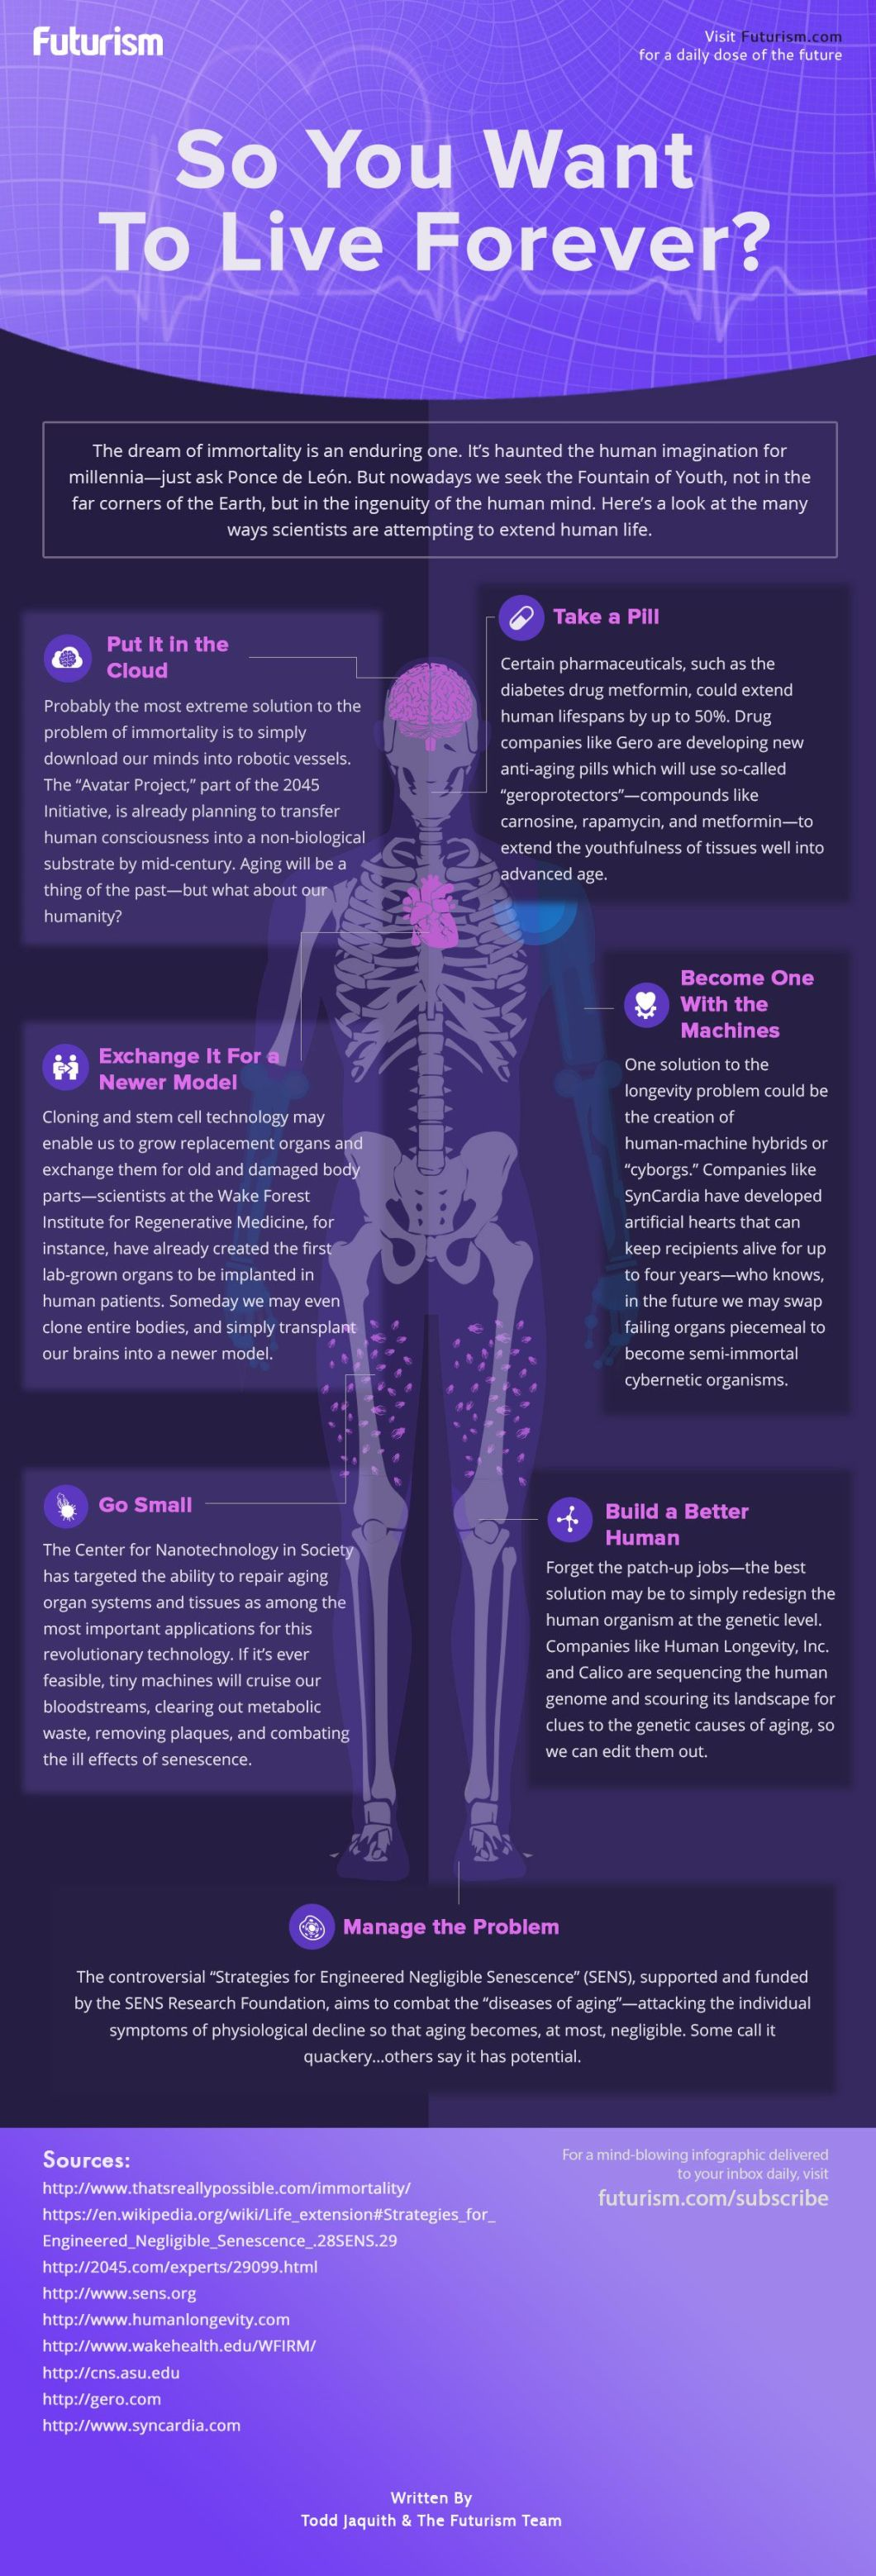 Will Man's Quest for the Fountain of Youth Be Realized? - Infographic